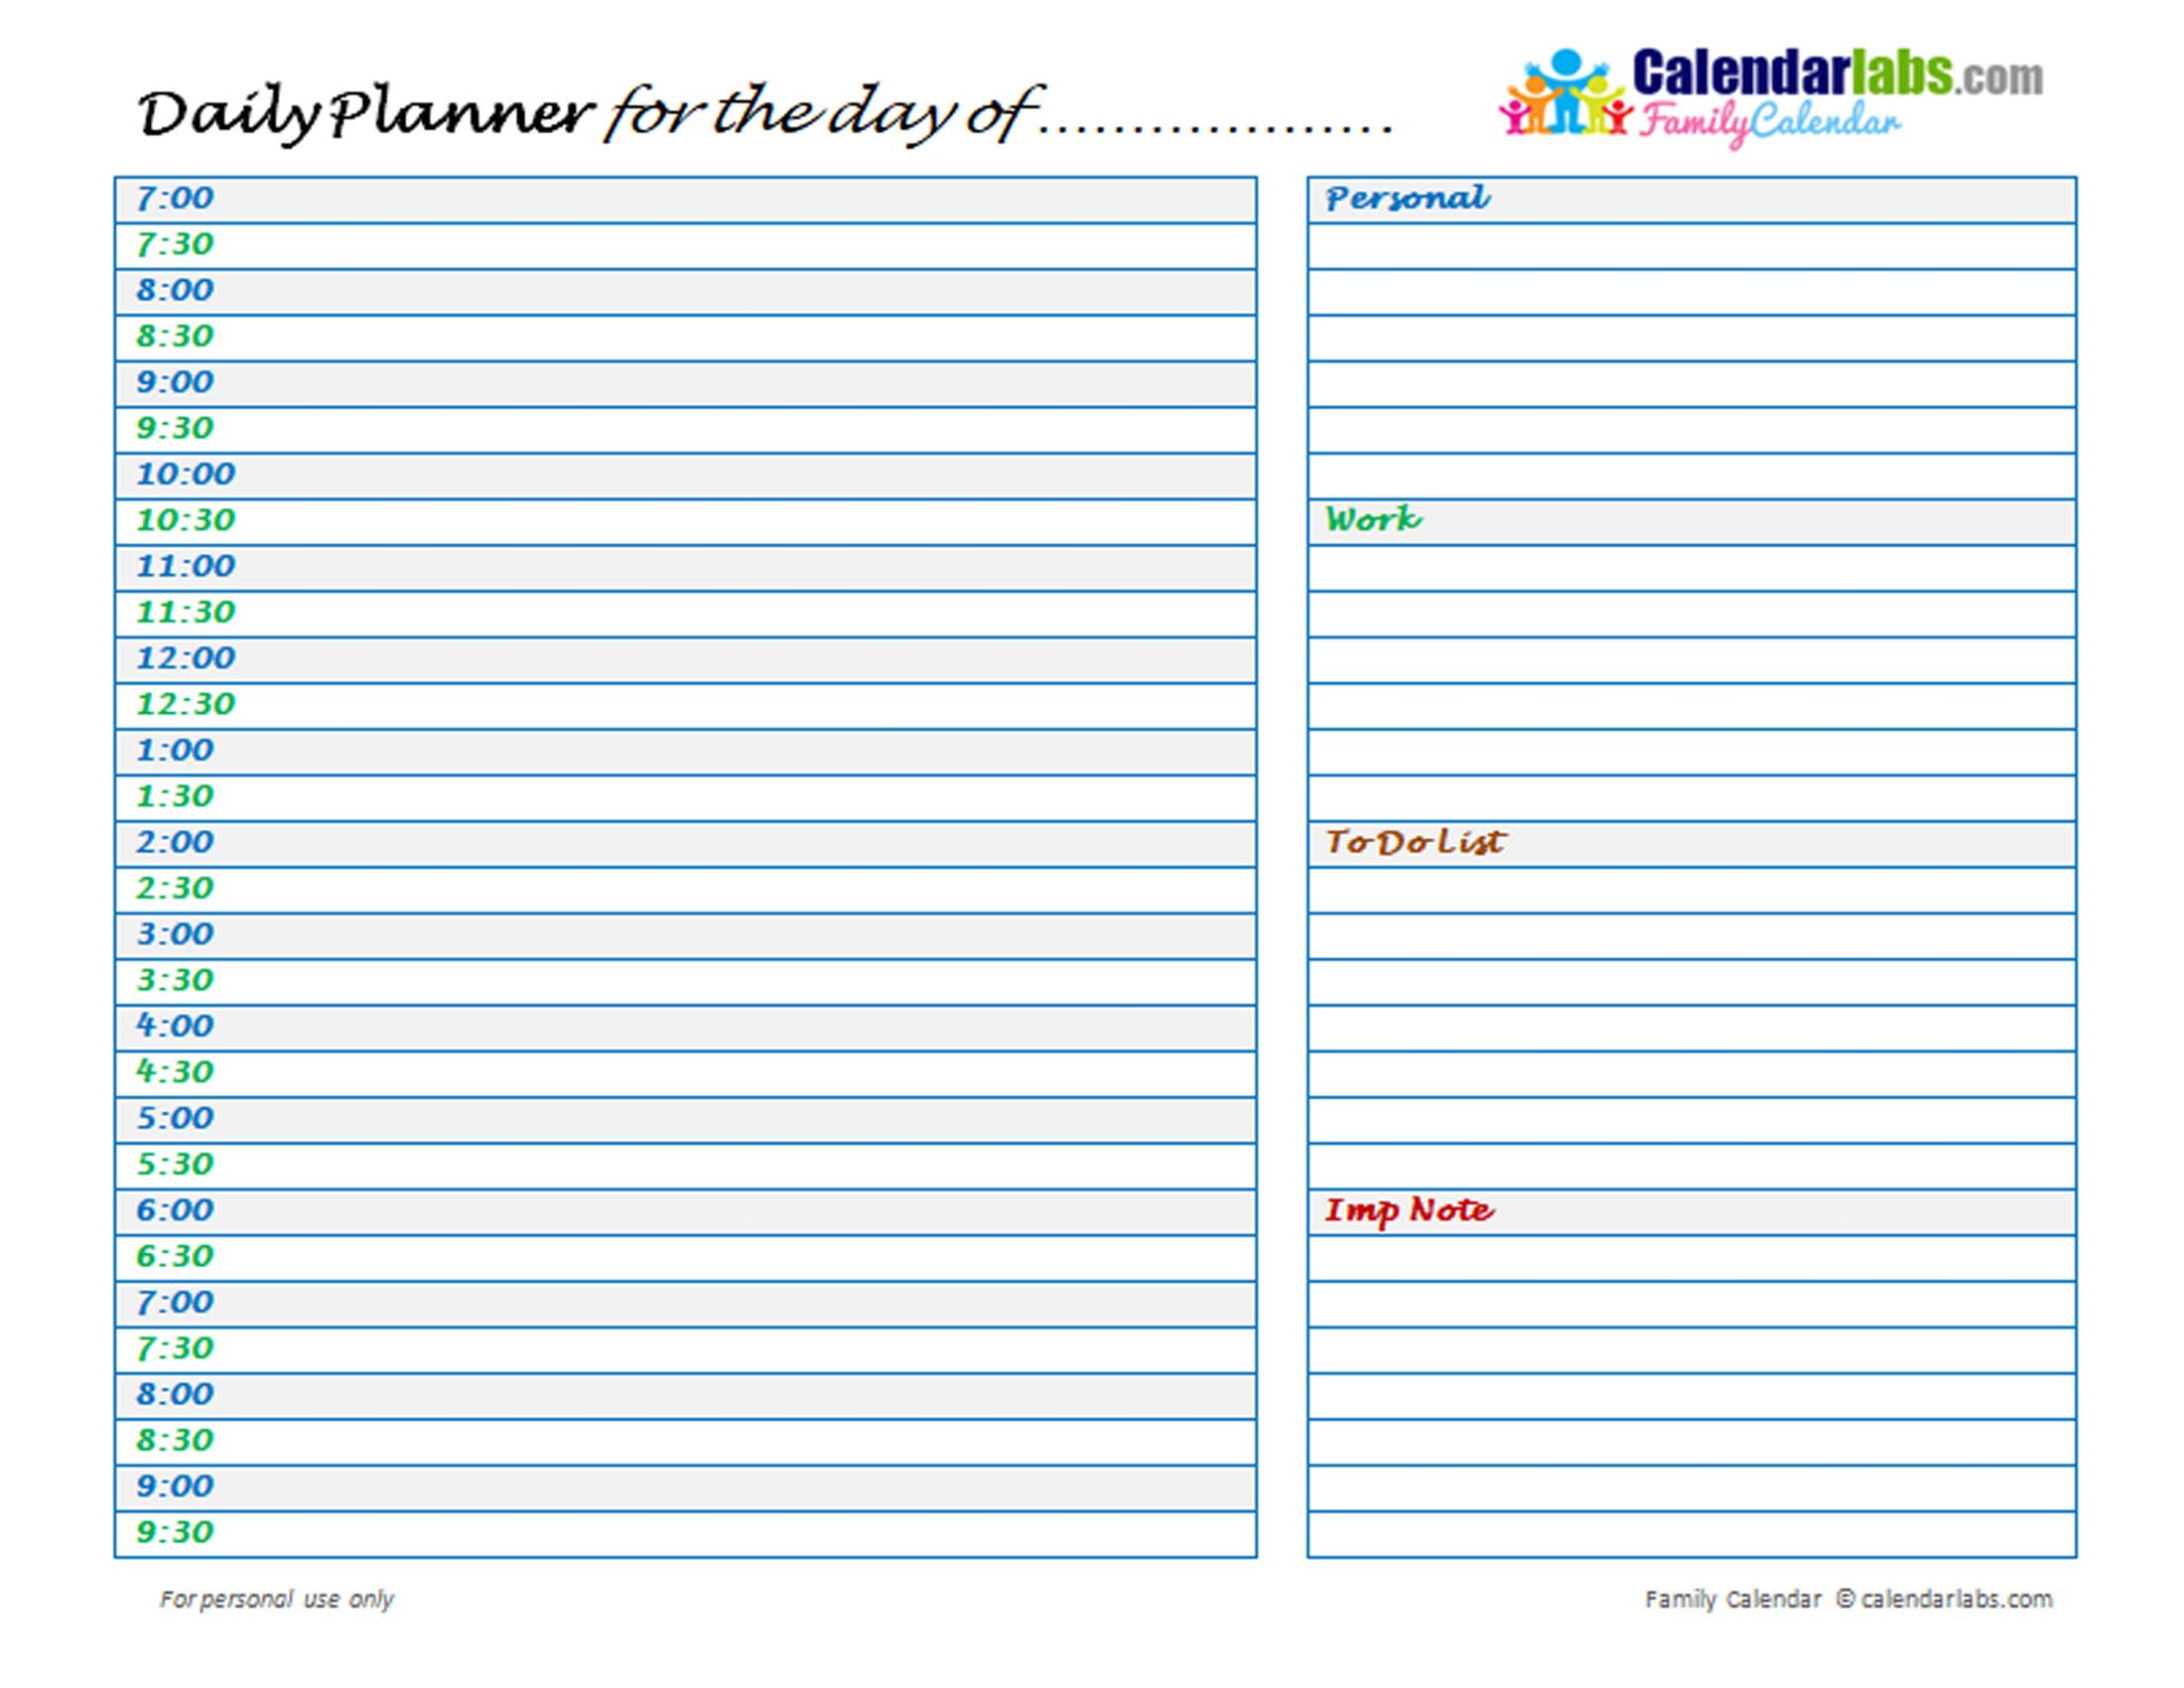 2021 Family Daily Planner - Free Printable Templates